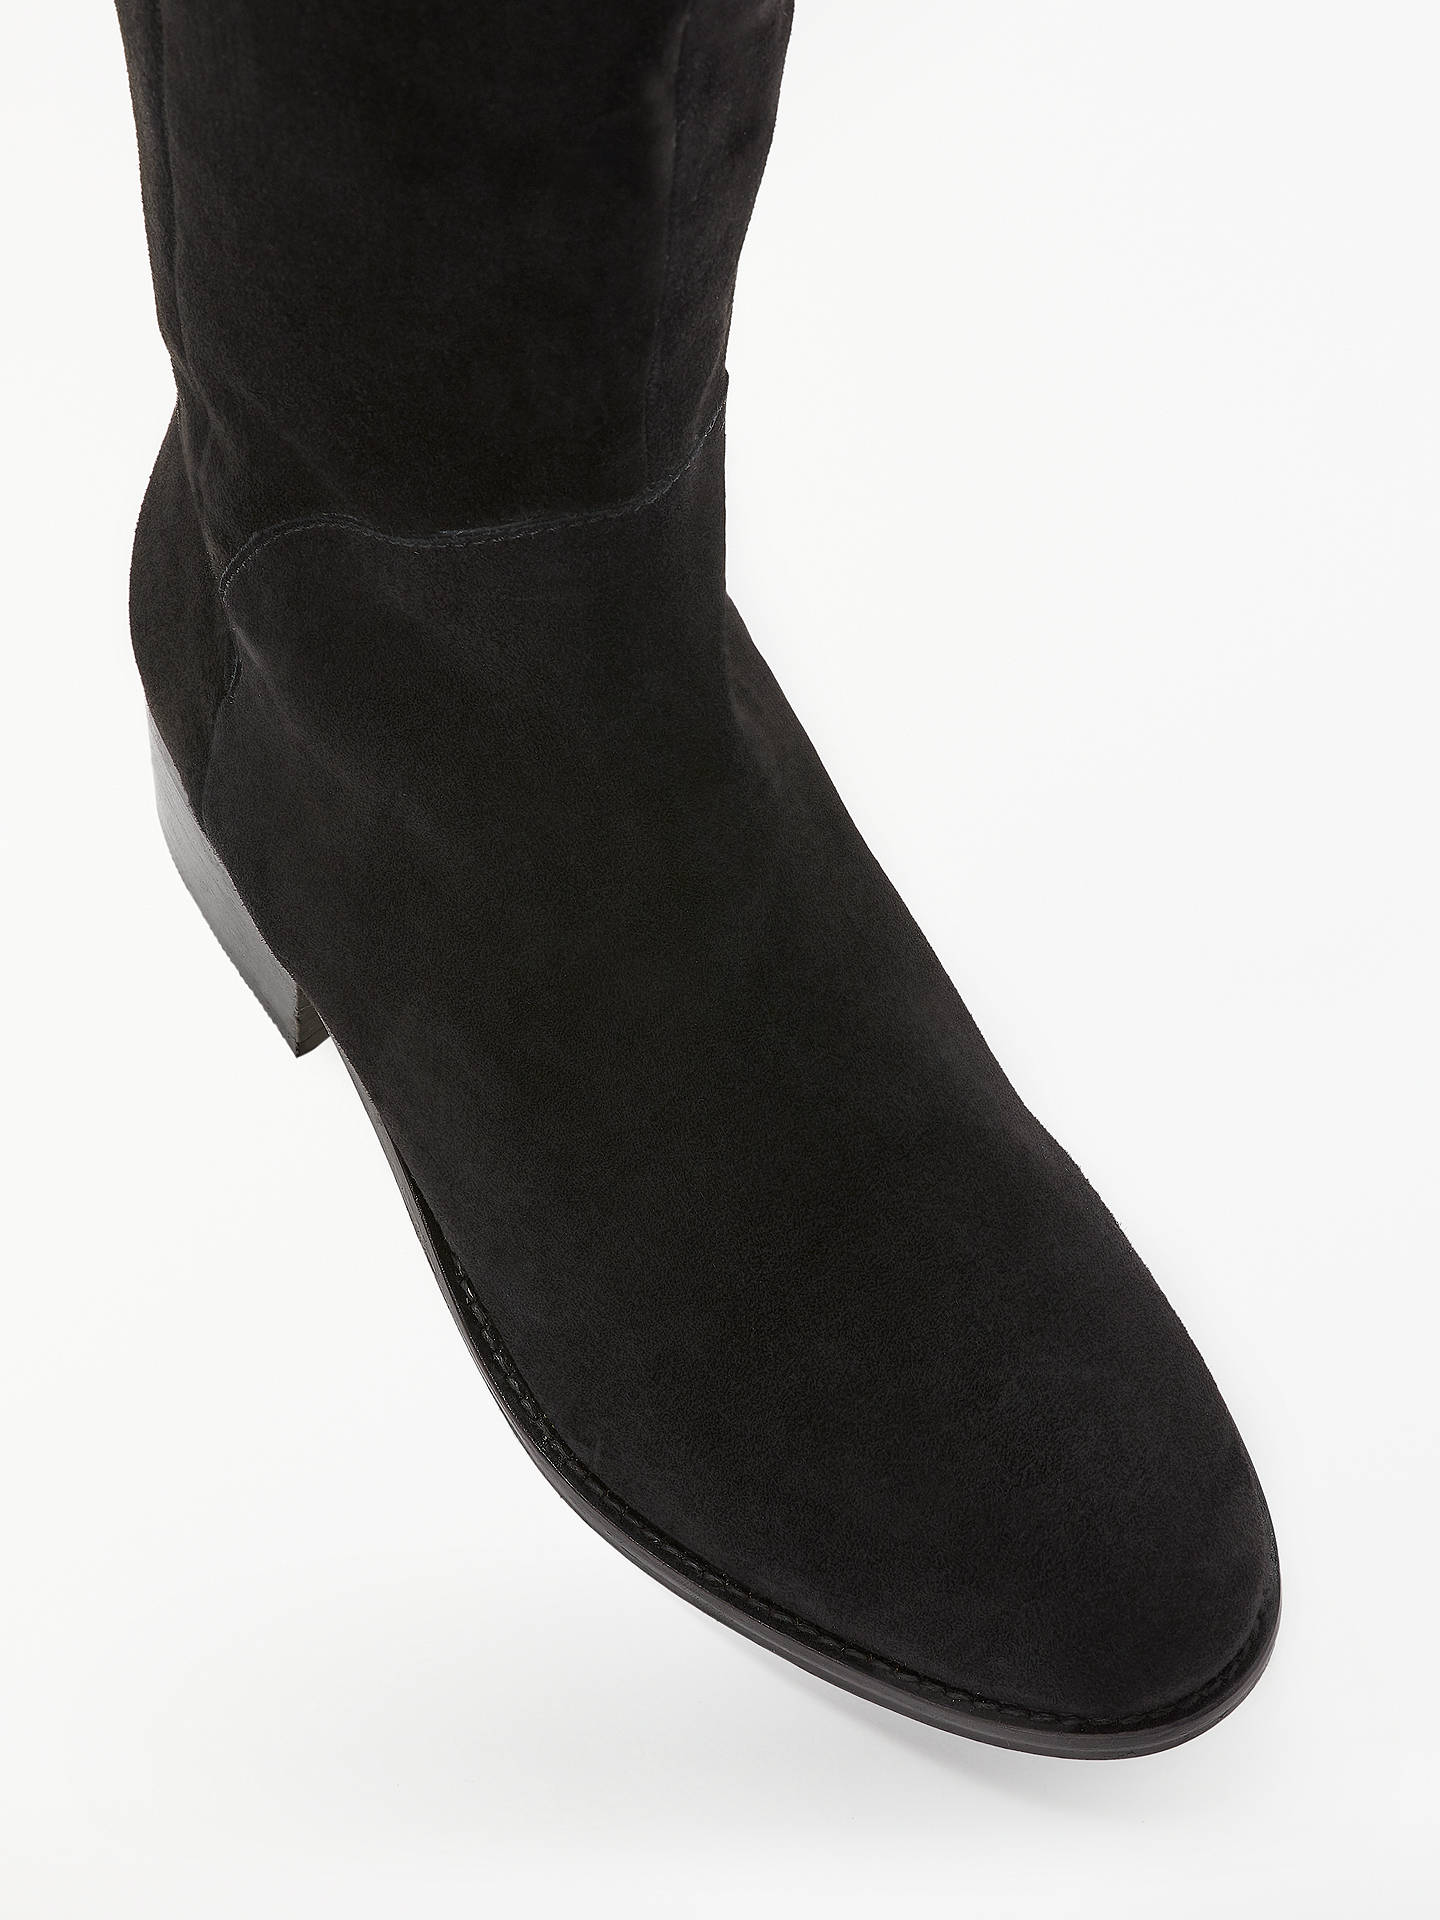 BuyBoden Bray Over The Knee Boots, Black Suede, 4 Online at johnlewis.com